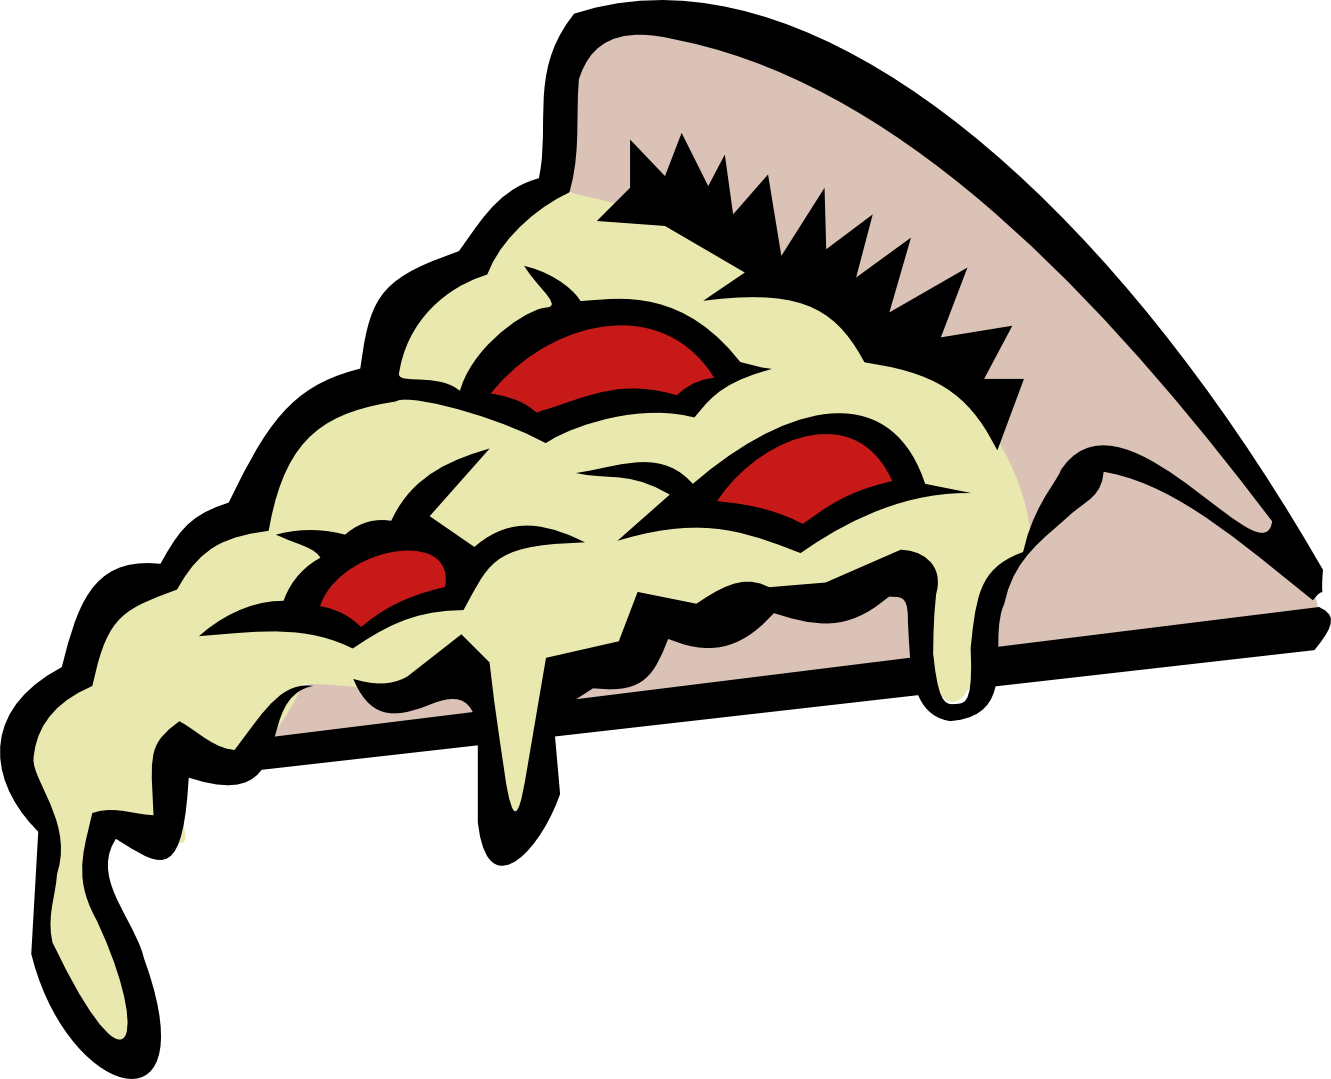 Slice Of Pizza Clipart.